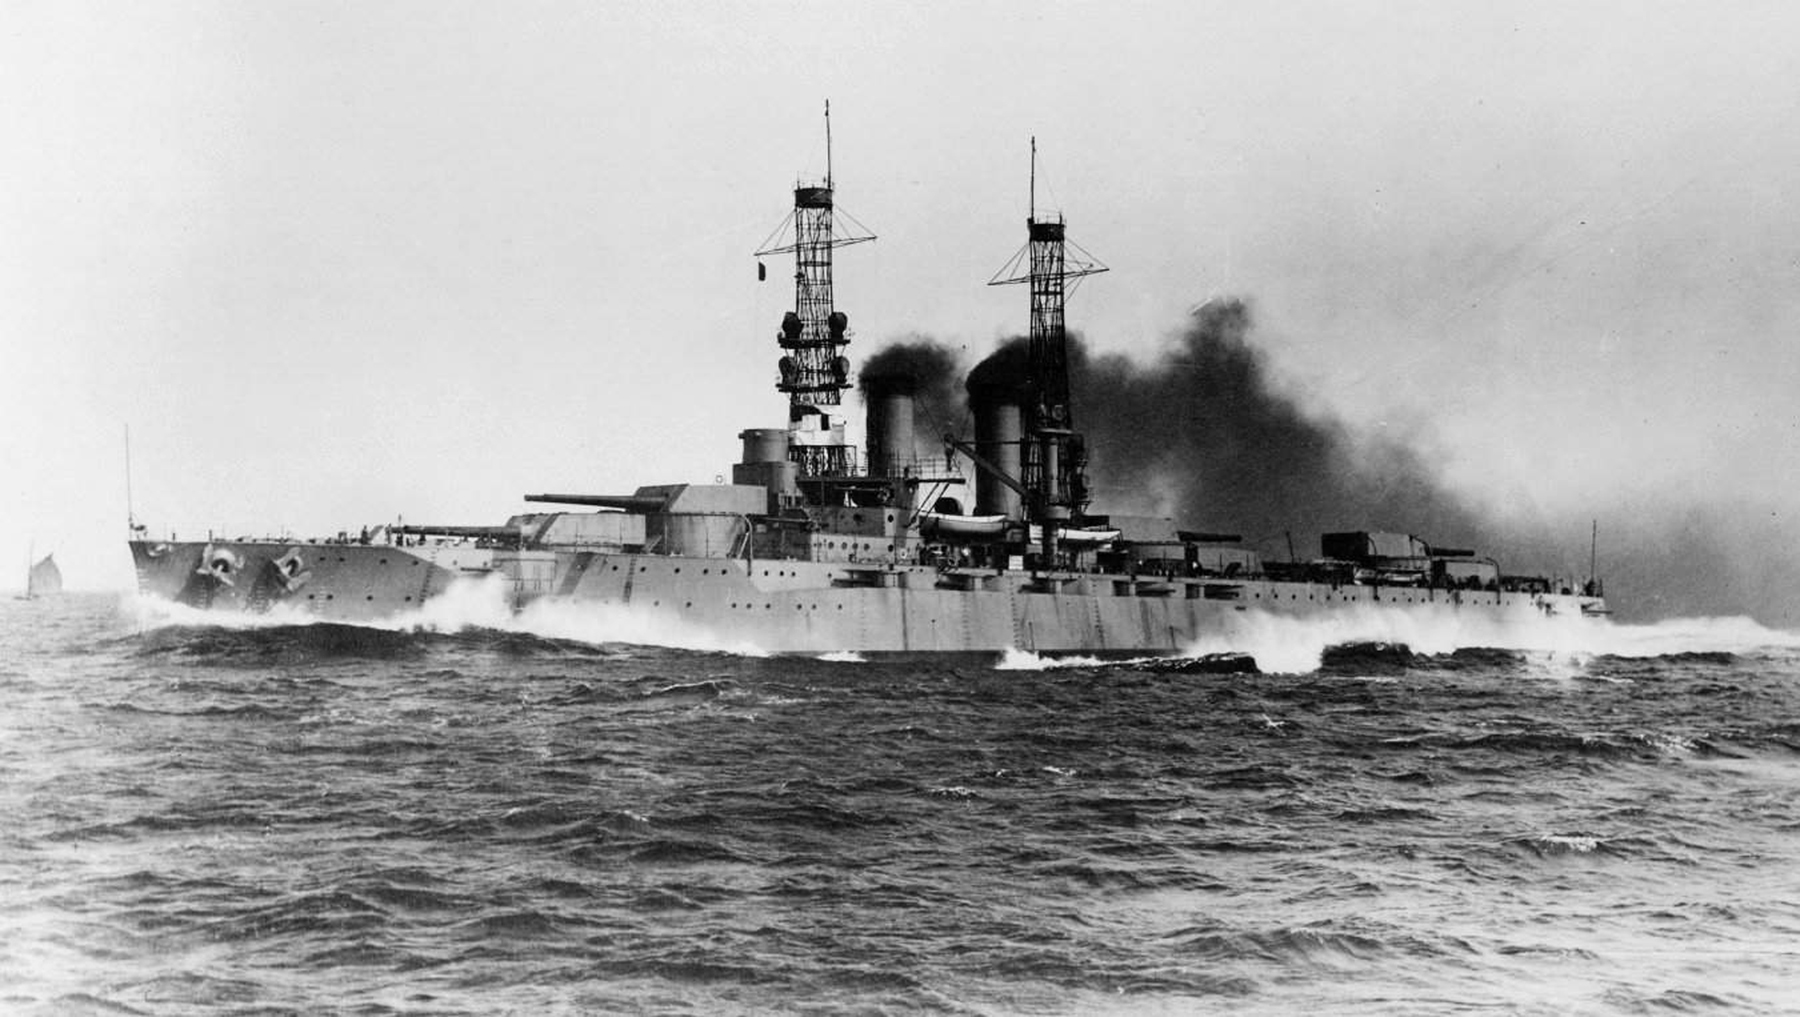 Battleship USS Wyoming Launched 108 Years Ago Today